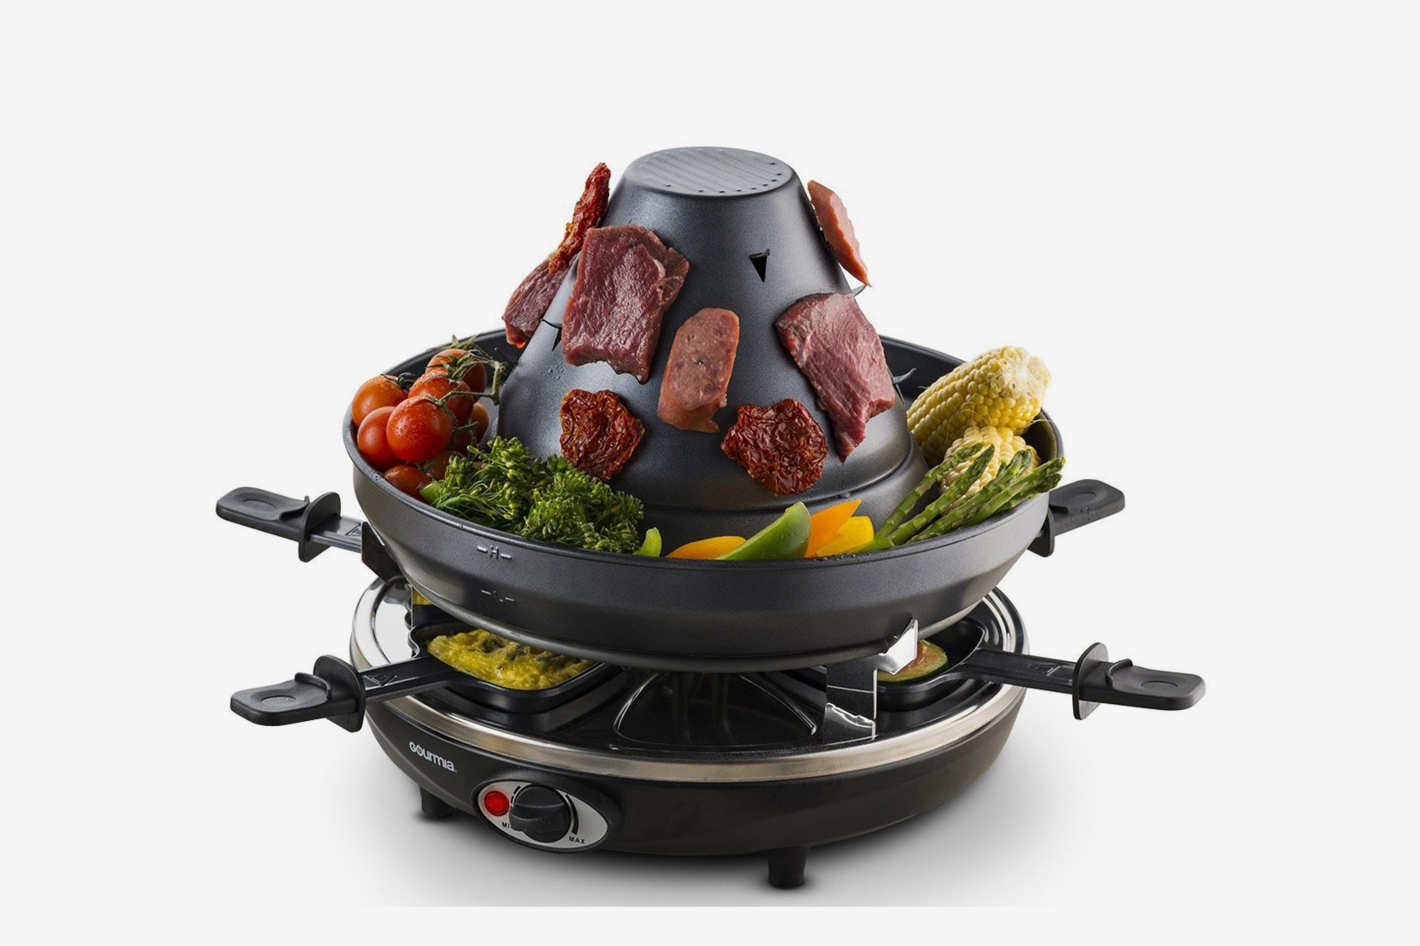 7 Best Fondue Pots And Sets 2018 Luxury Cookware Ampamp Elegenzia Set Gourmia Geg1400 Electric Raclette Table Top Party Grill